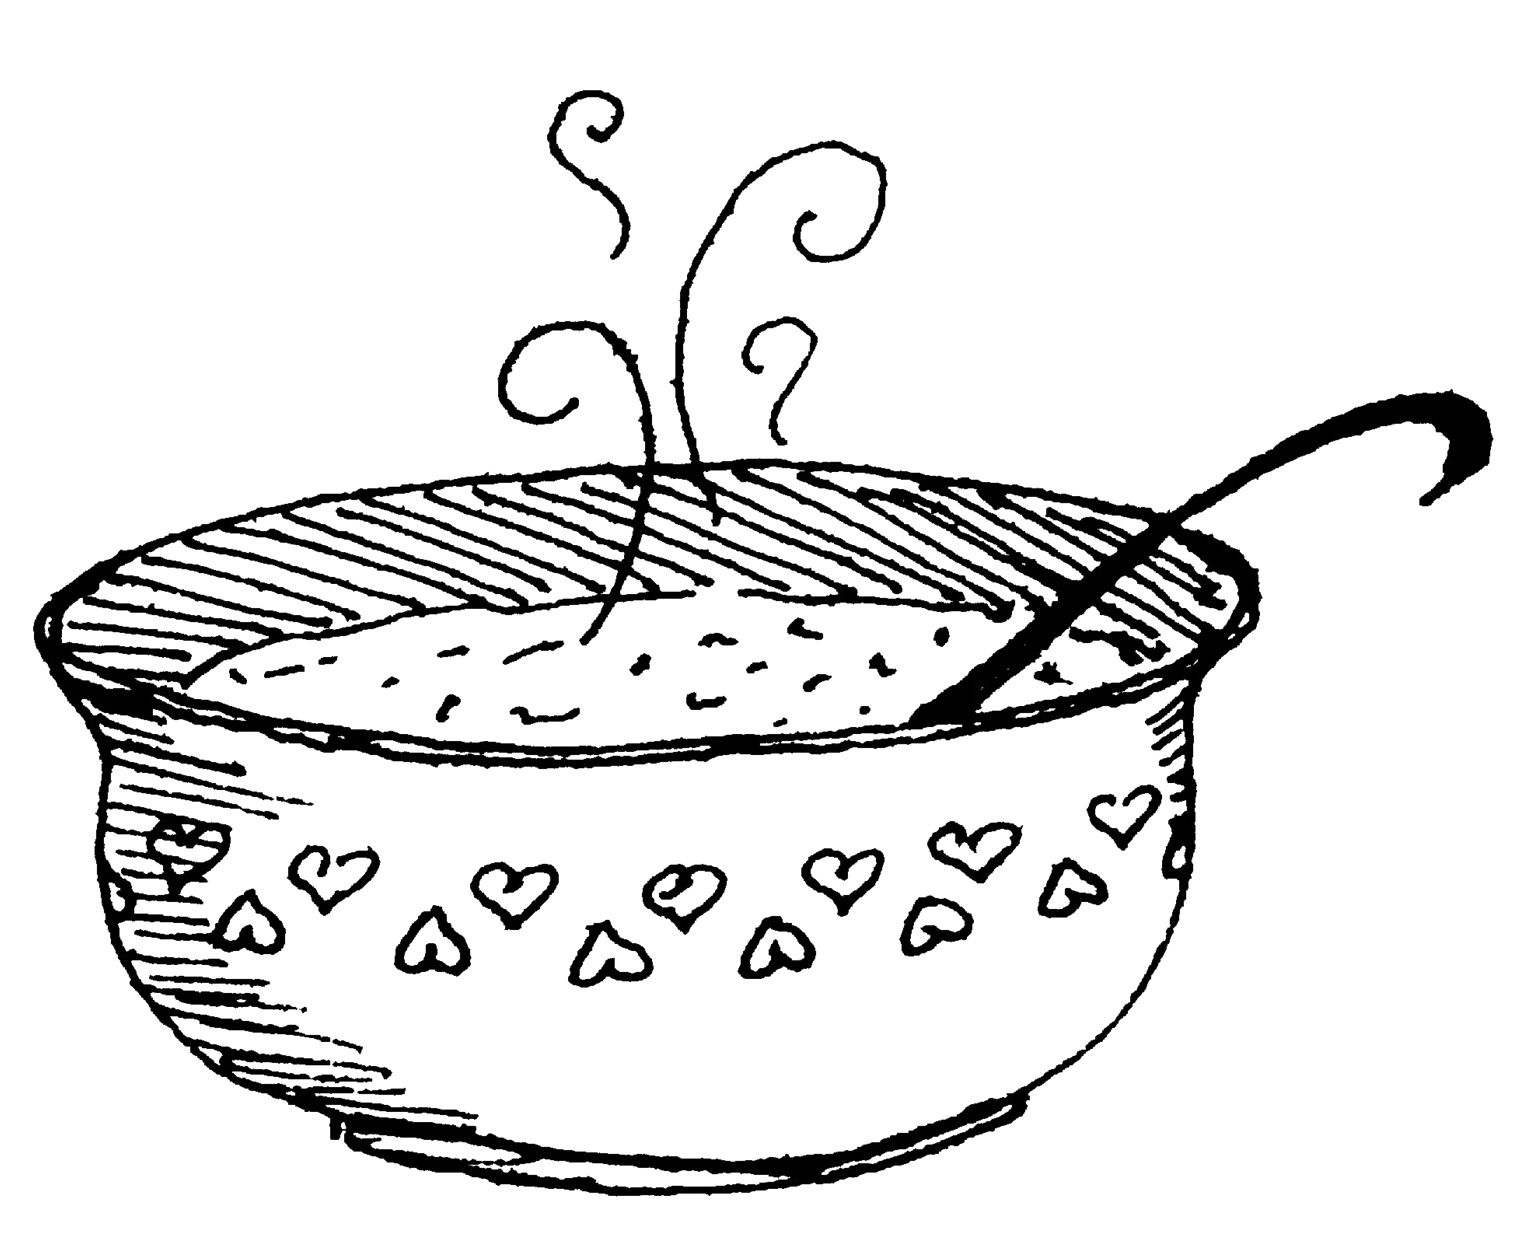 Chowder Coloring Pages To Print - Coloring Home | 1255x1516